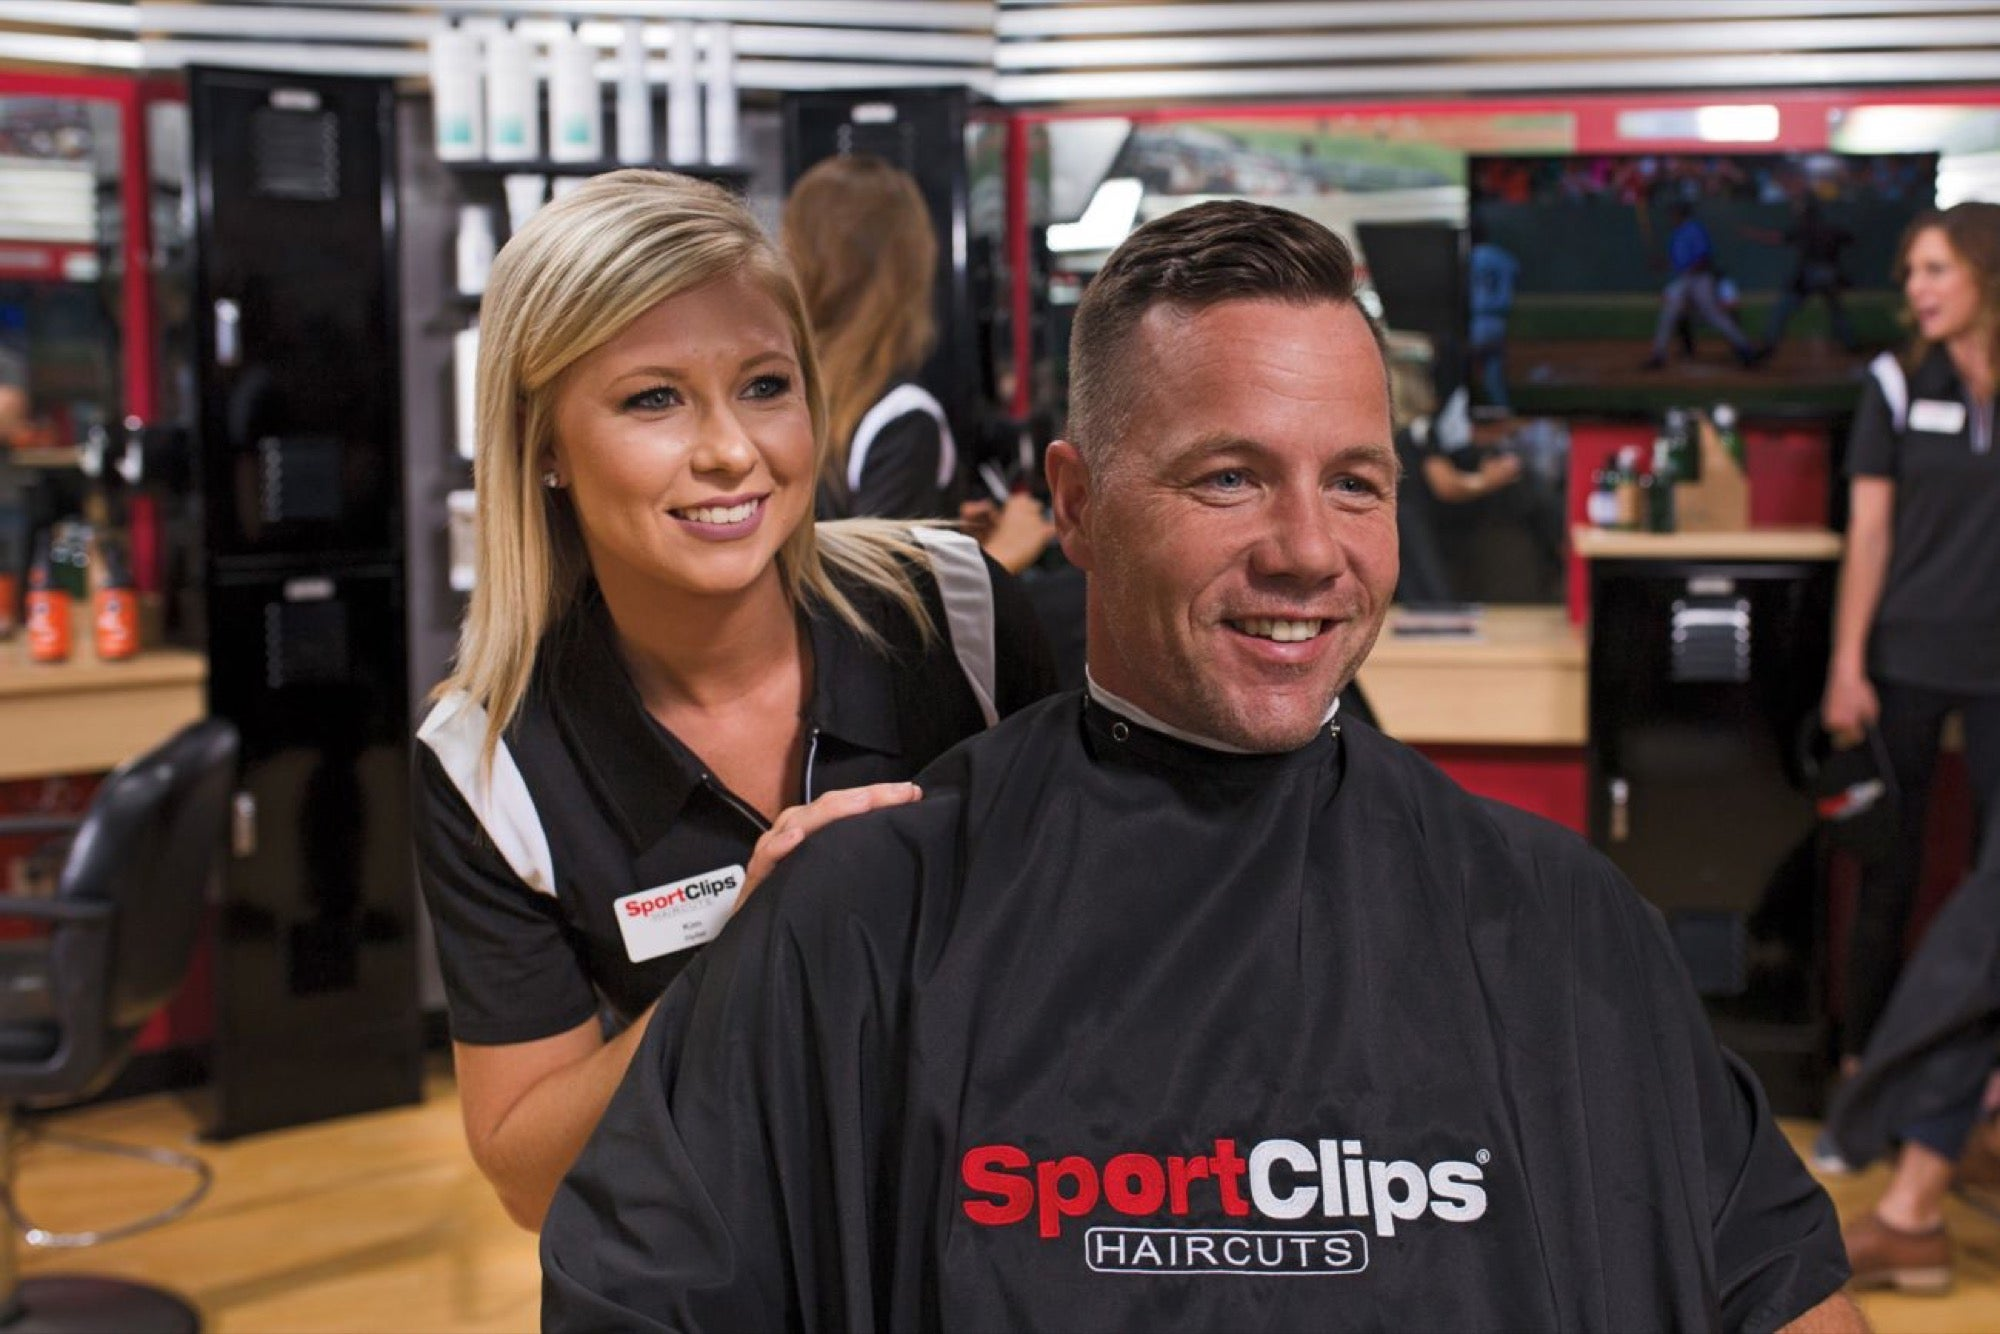 clips sports sport sportsclips